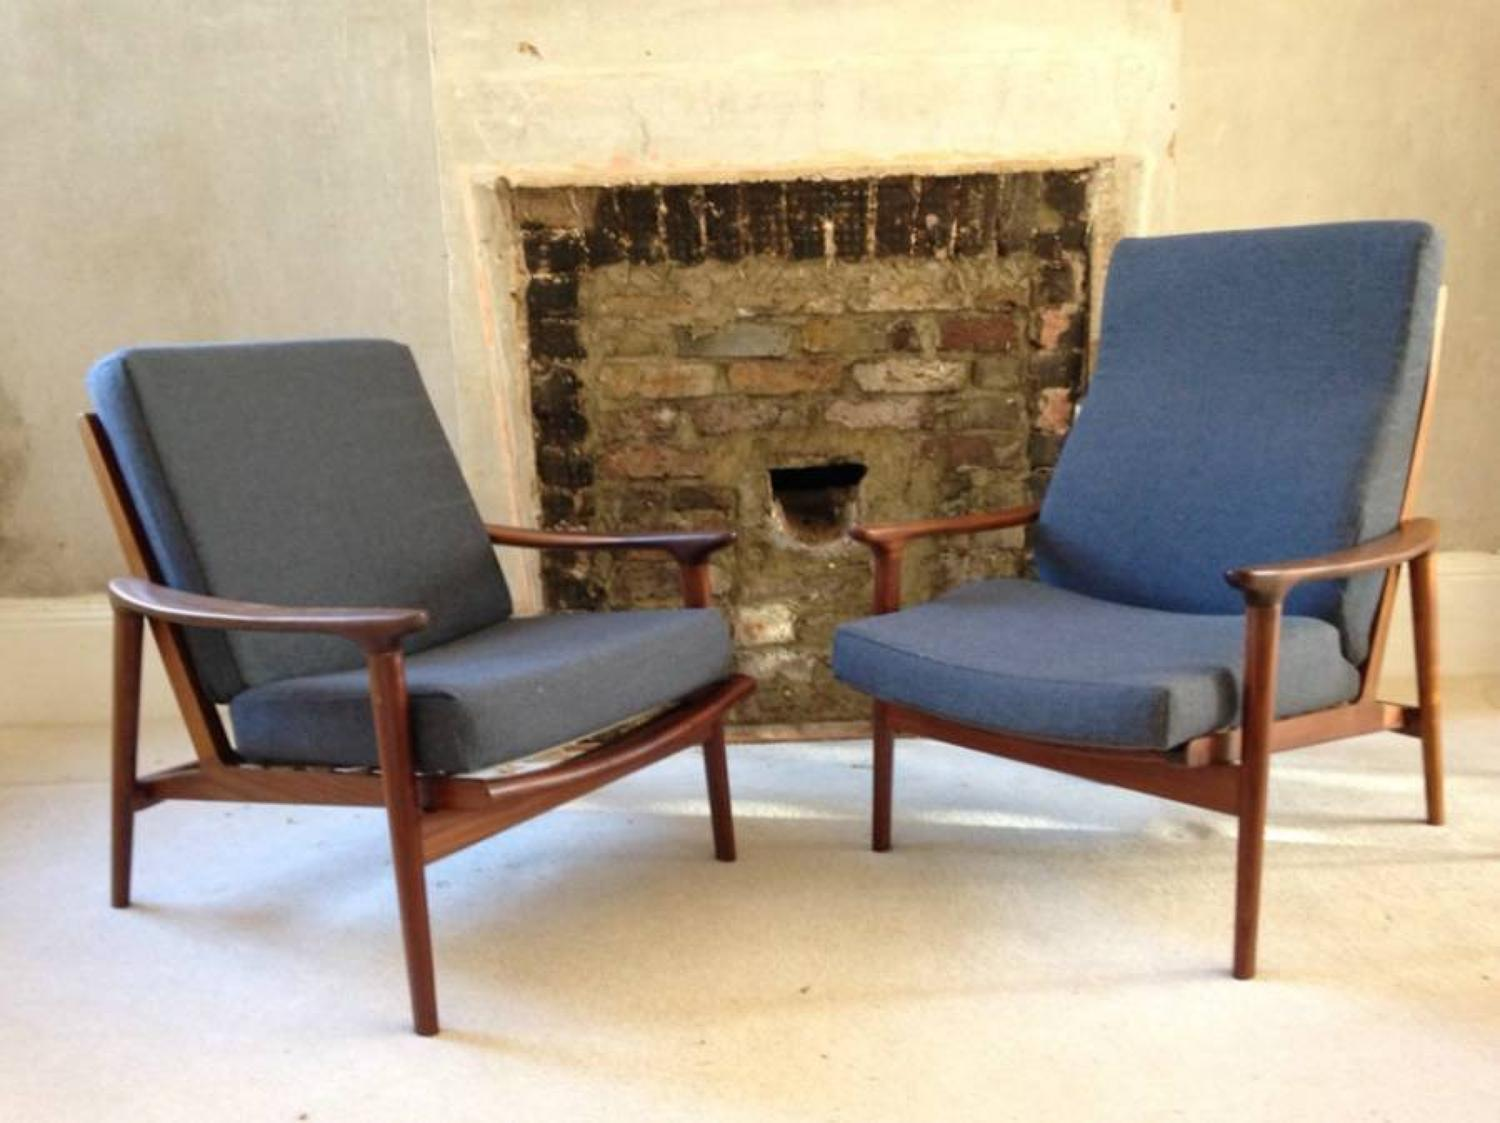 A pair of Guy Rogers armchairs